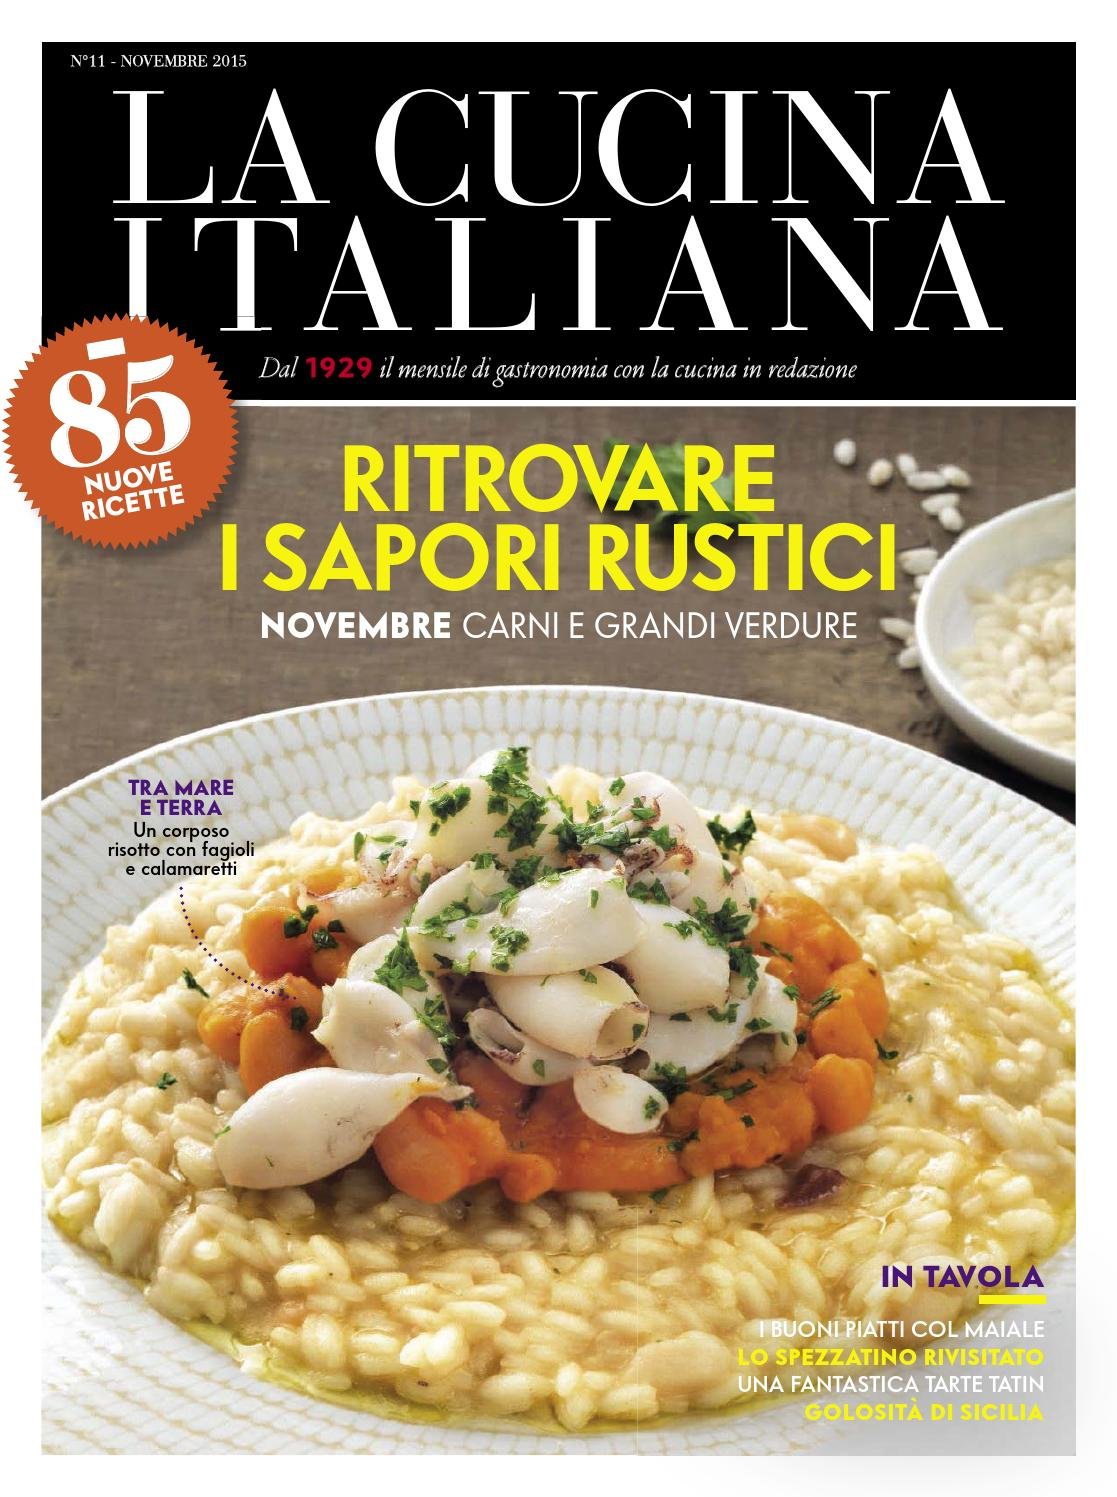 The Magazine Of La Cucina Italiana La Cucina Italiana Novembre 2015